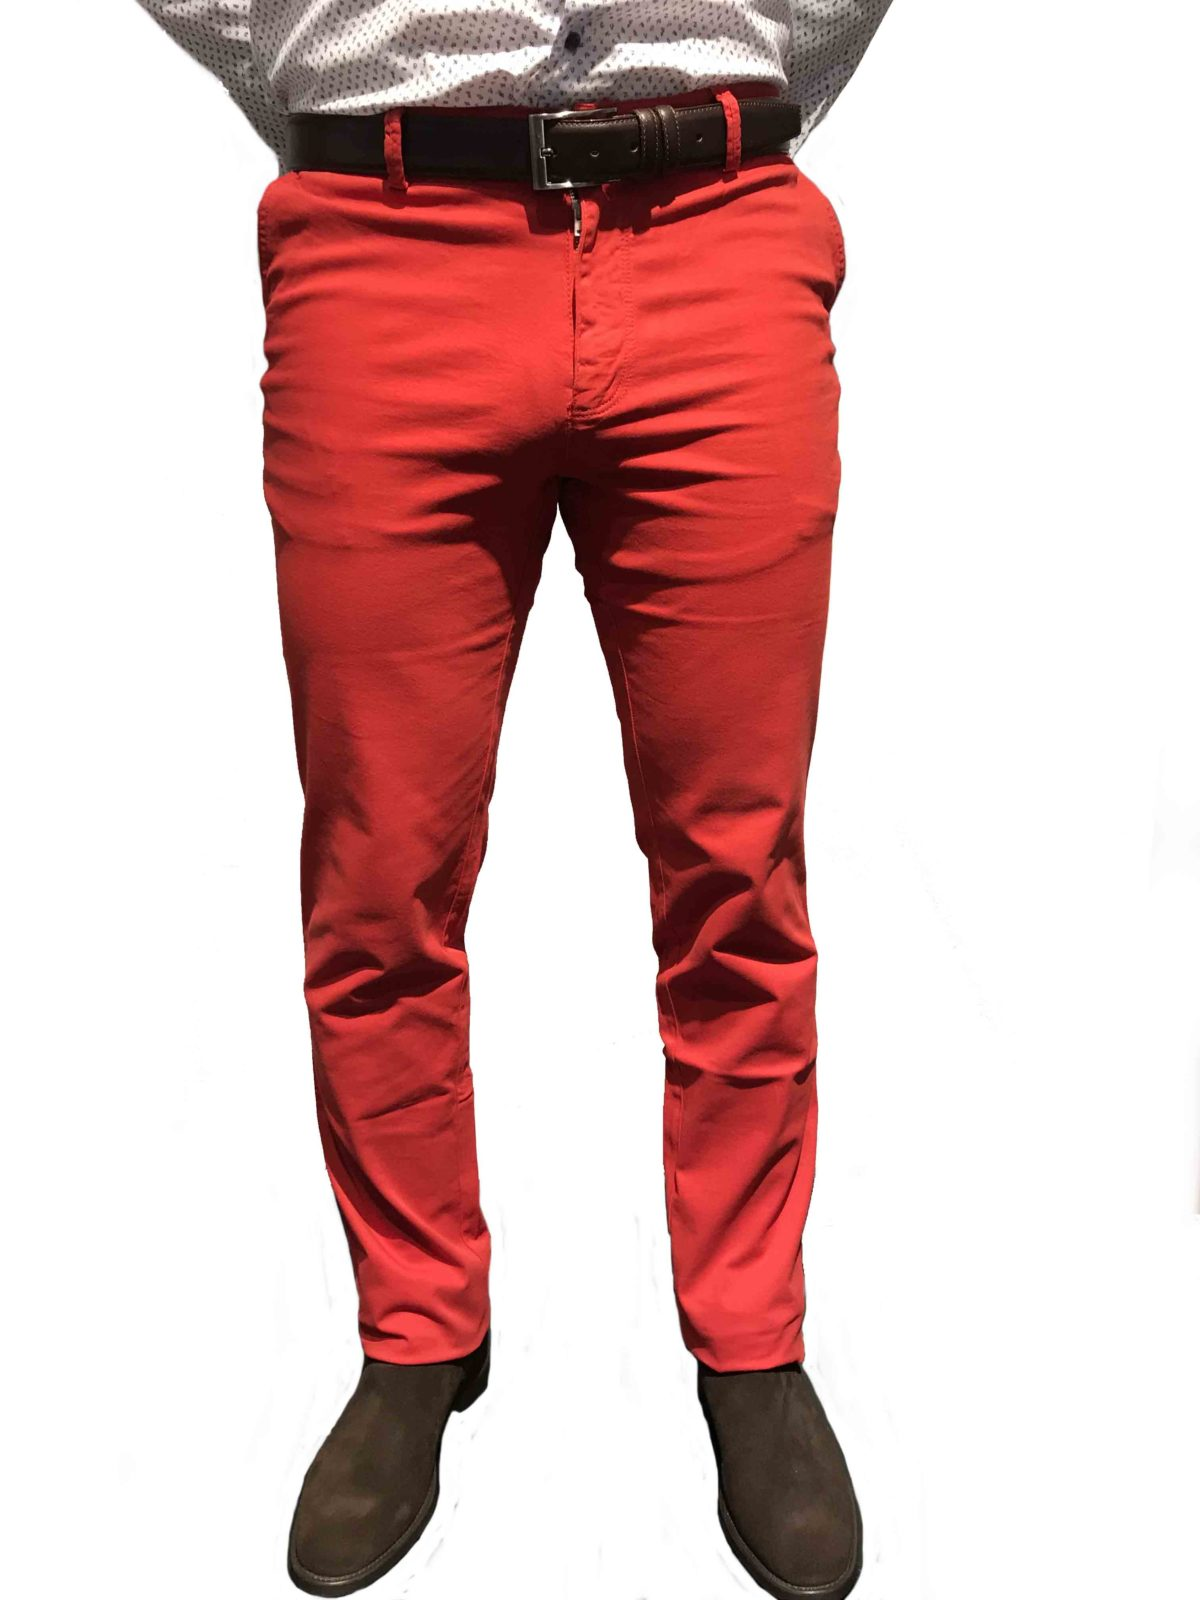 Ben Brown | BBP-15 Red chino